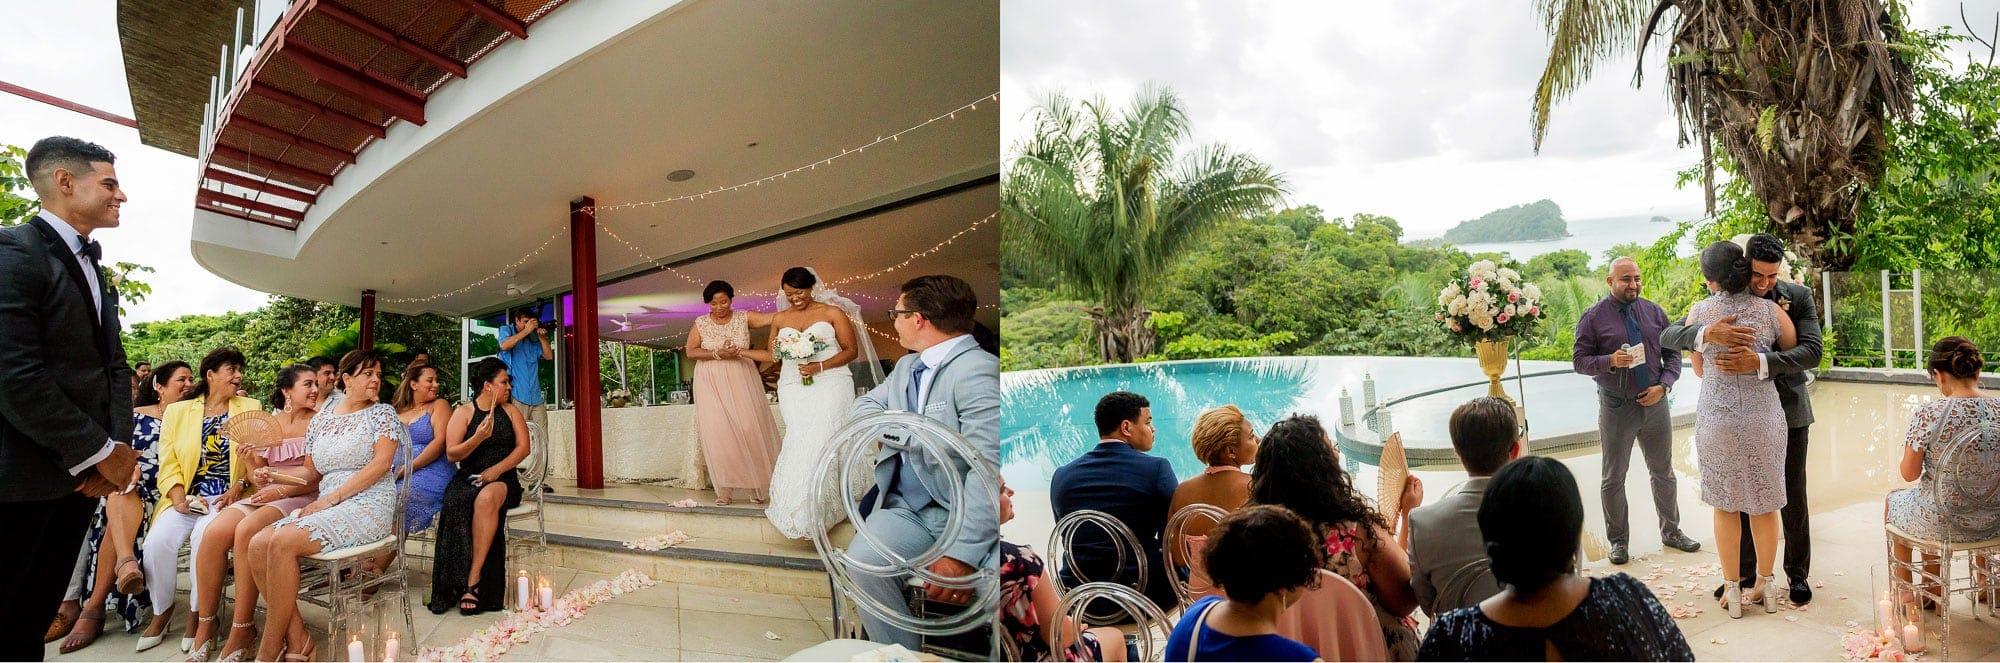 Wedding venue ideas: clear seating in front a pool with a breathtaking view